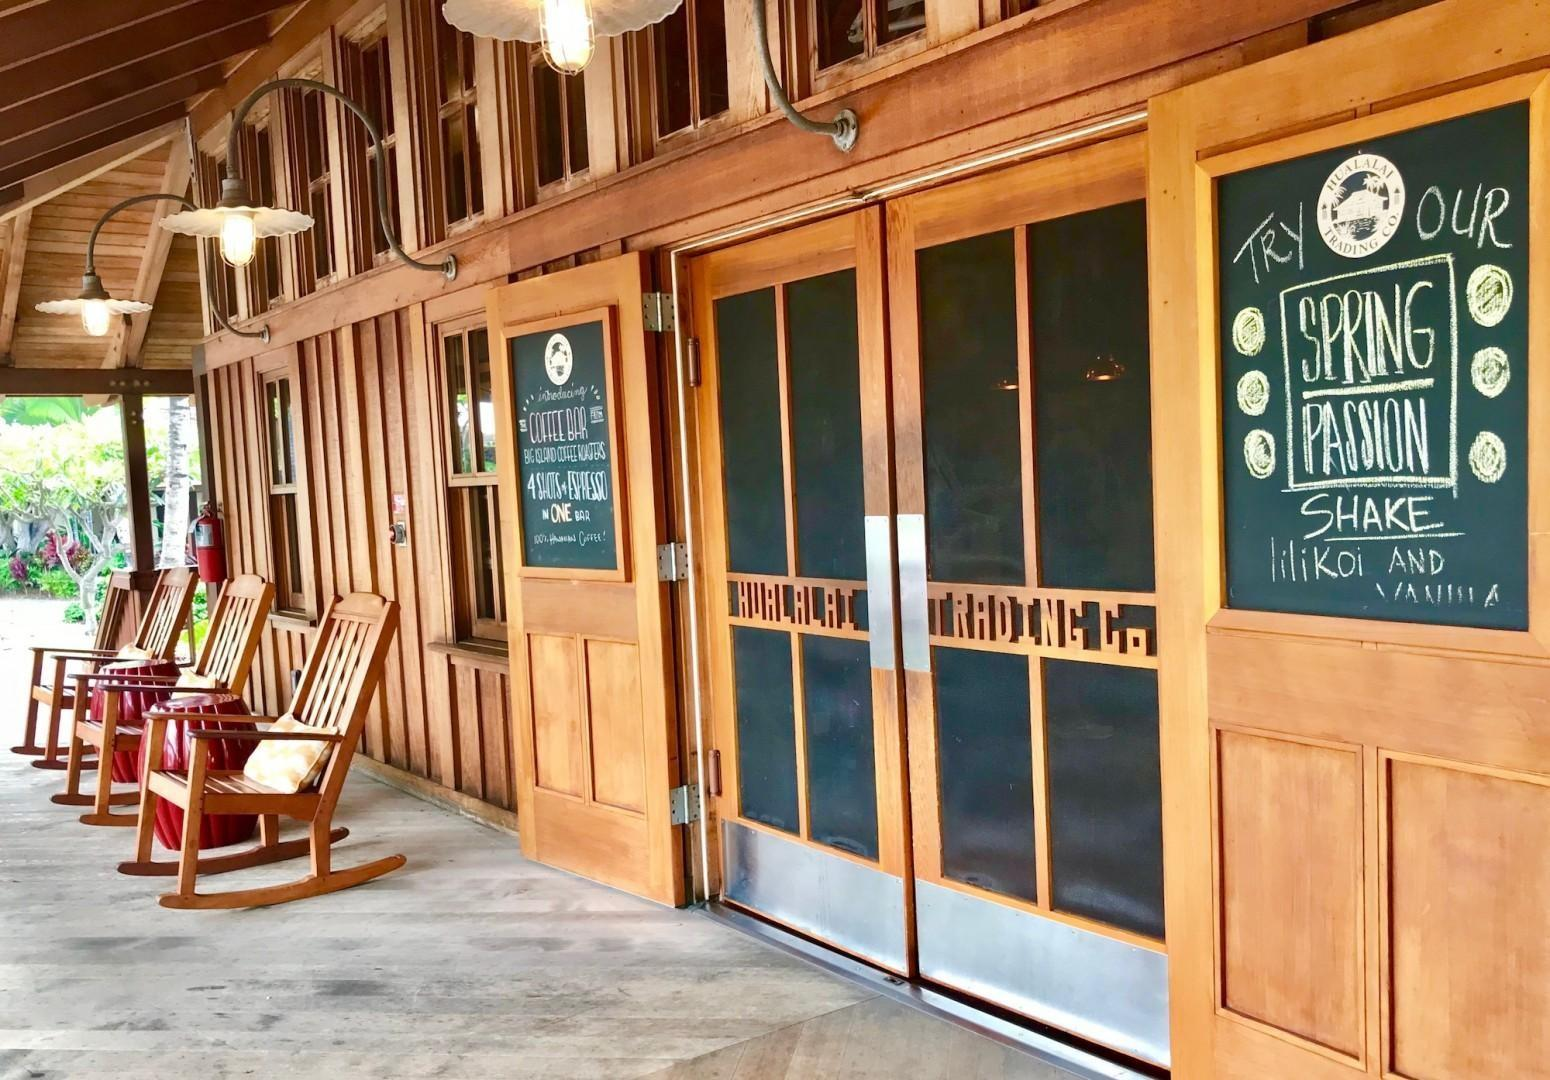 Four Seasons Resort Trading Company with grab and go food and sundry items.